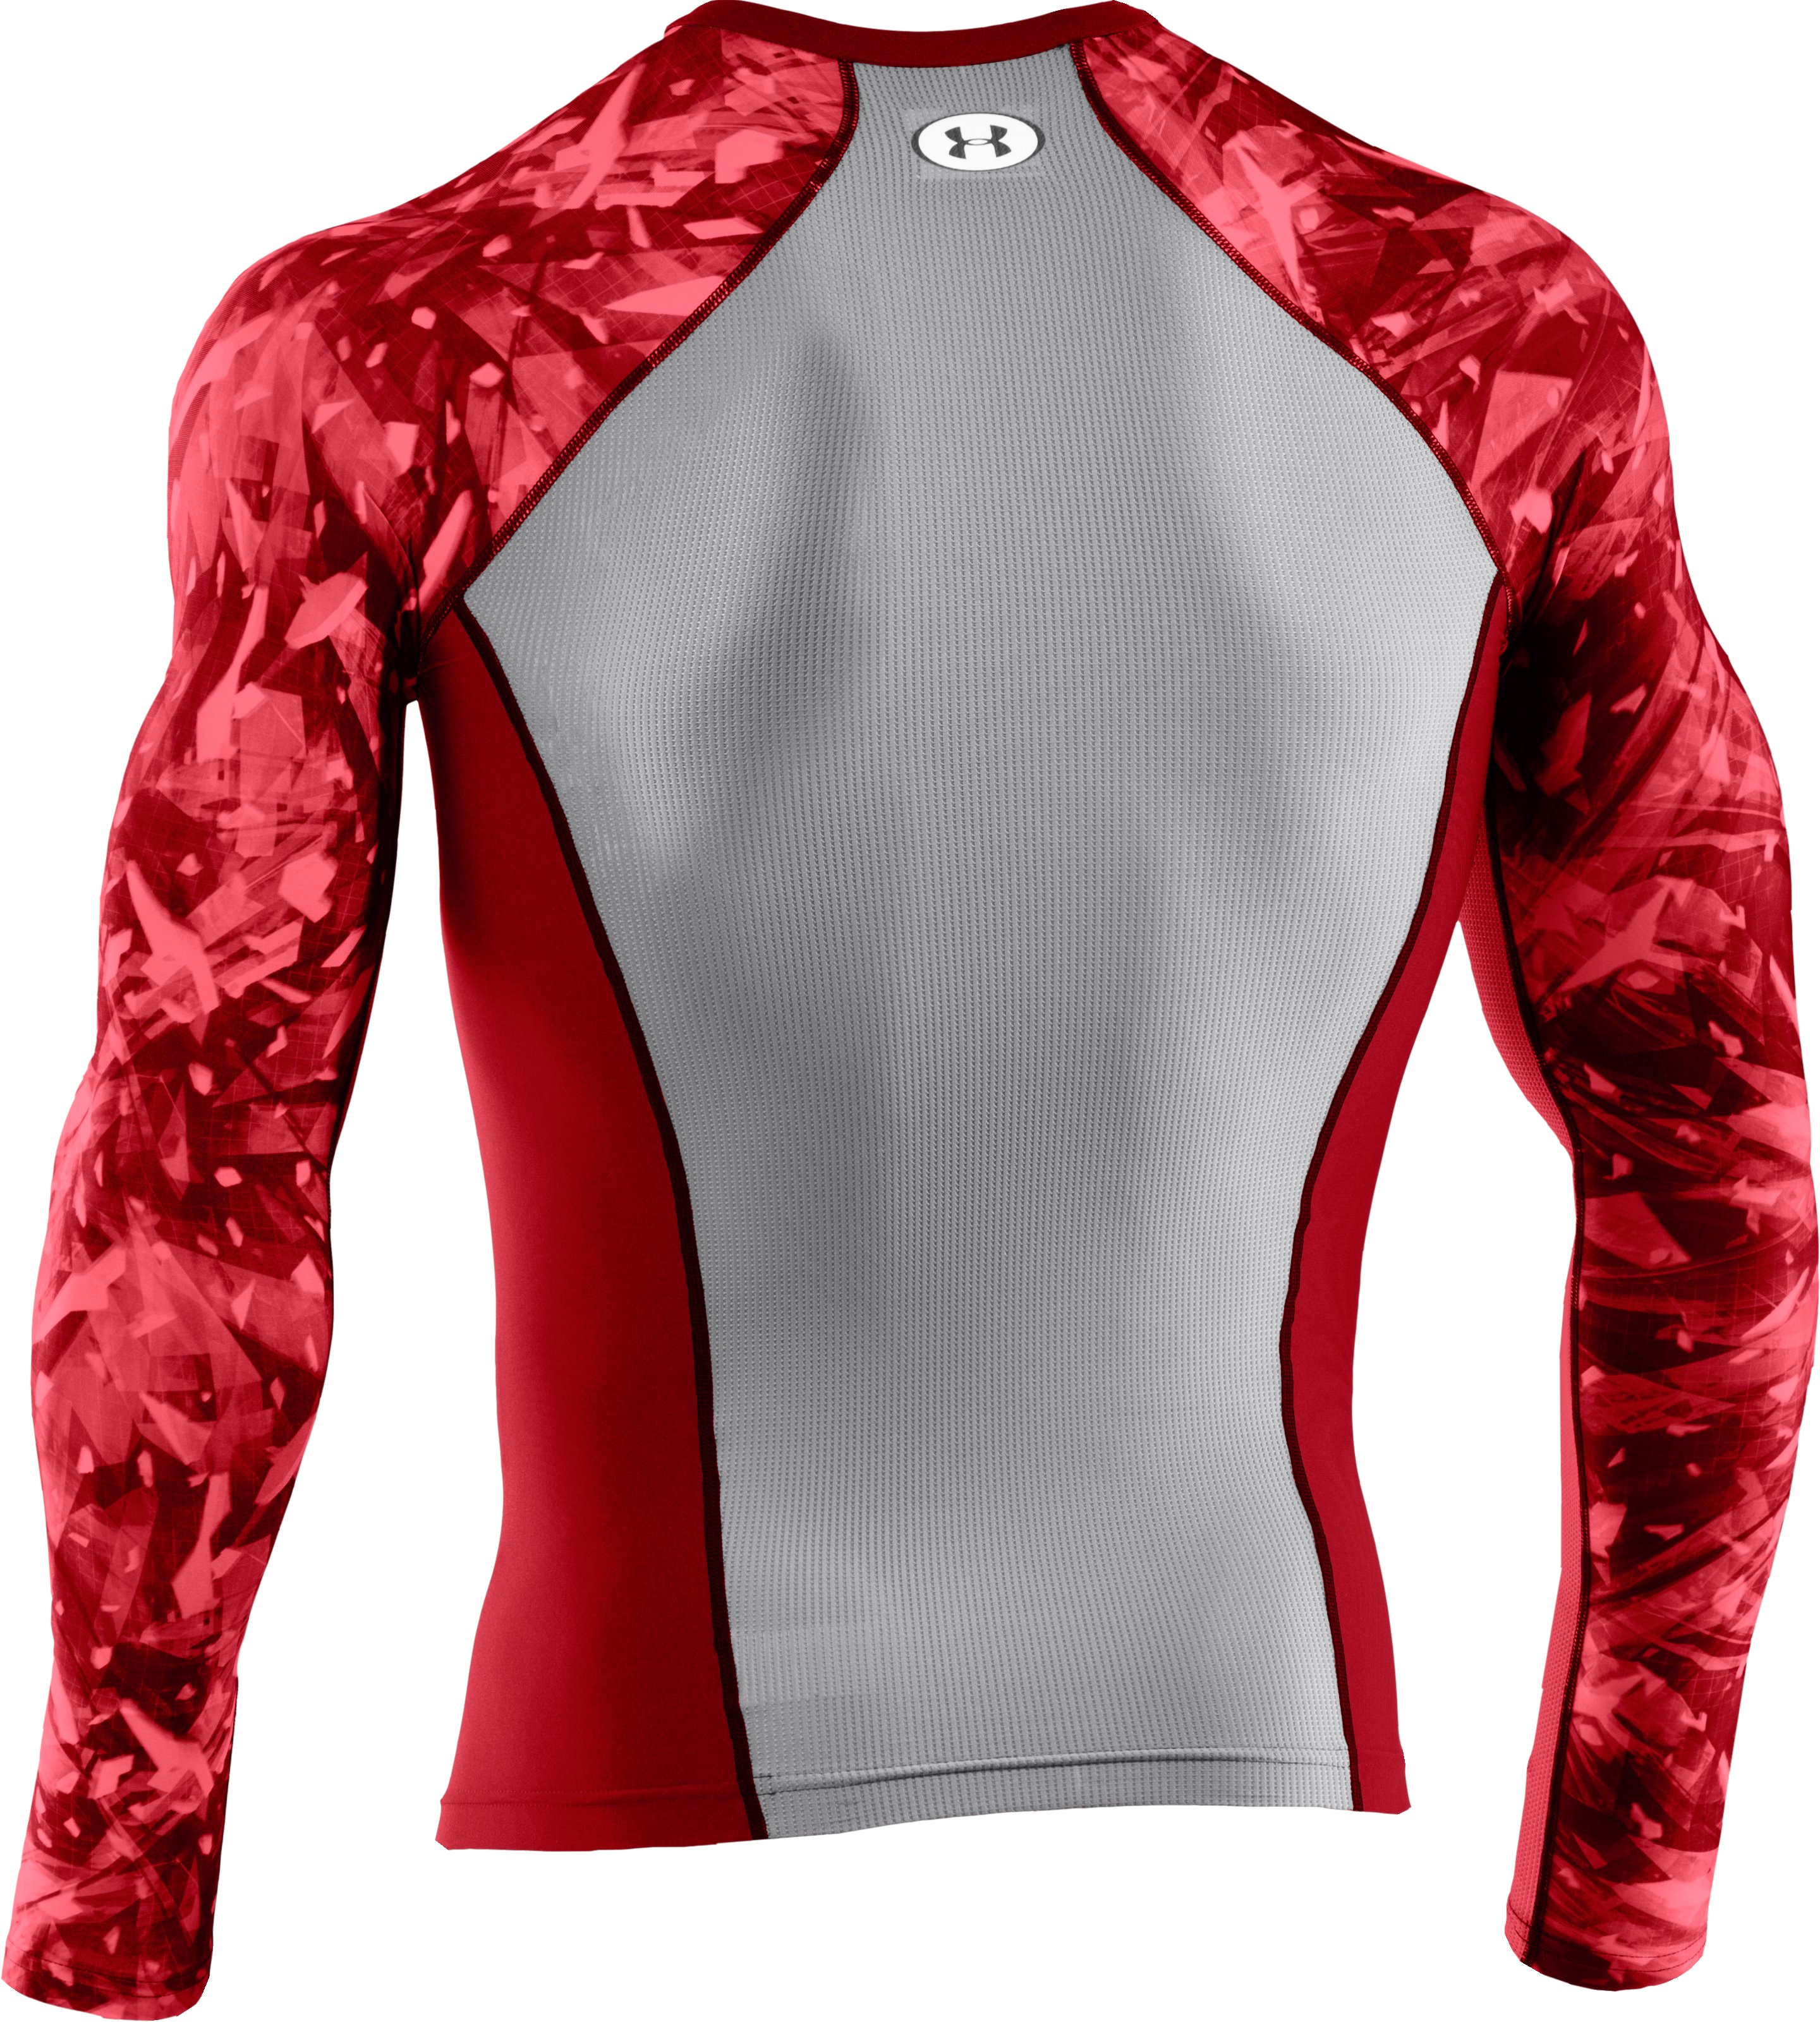 Men's NFL Combine Authentic Compression Long Sleeve, Red